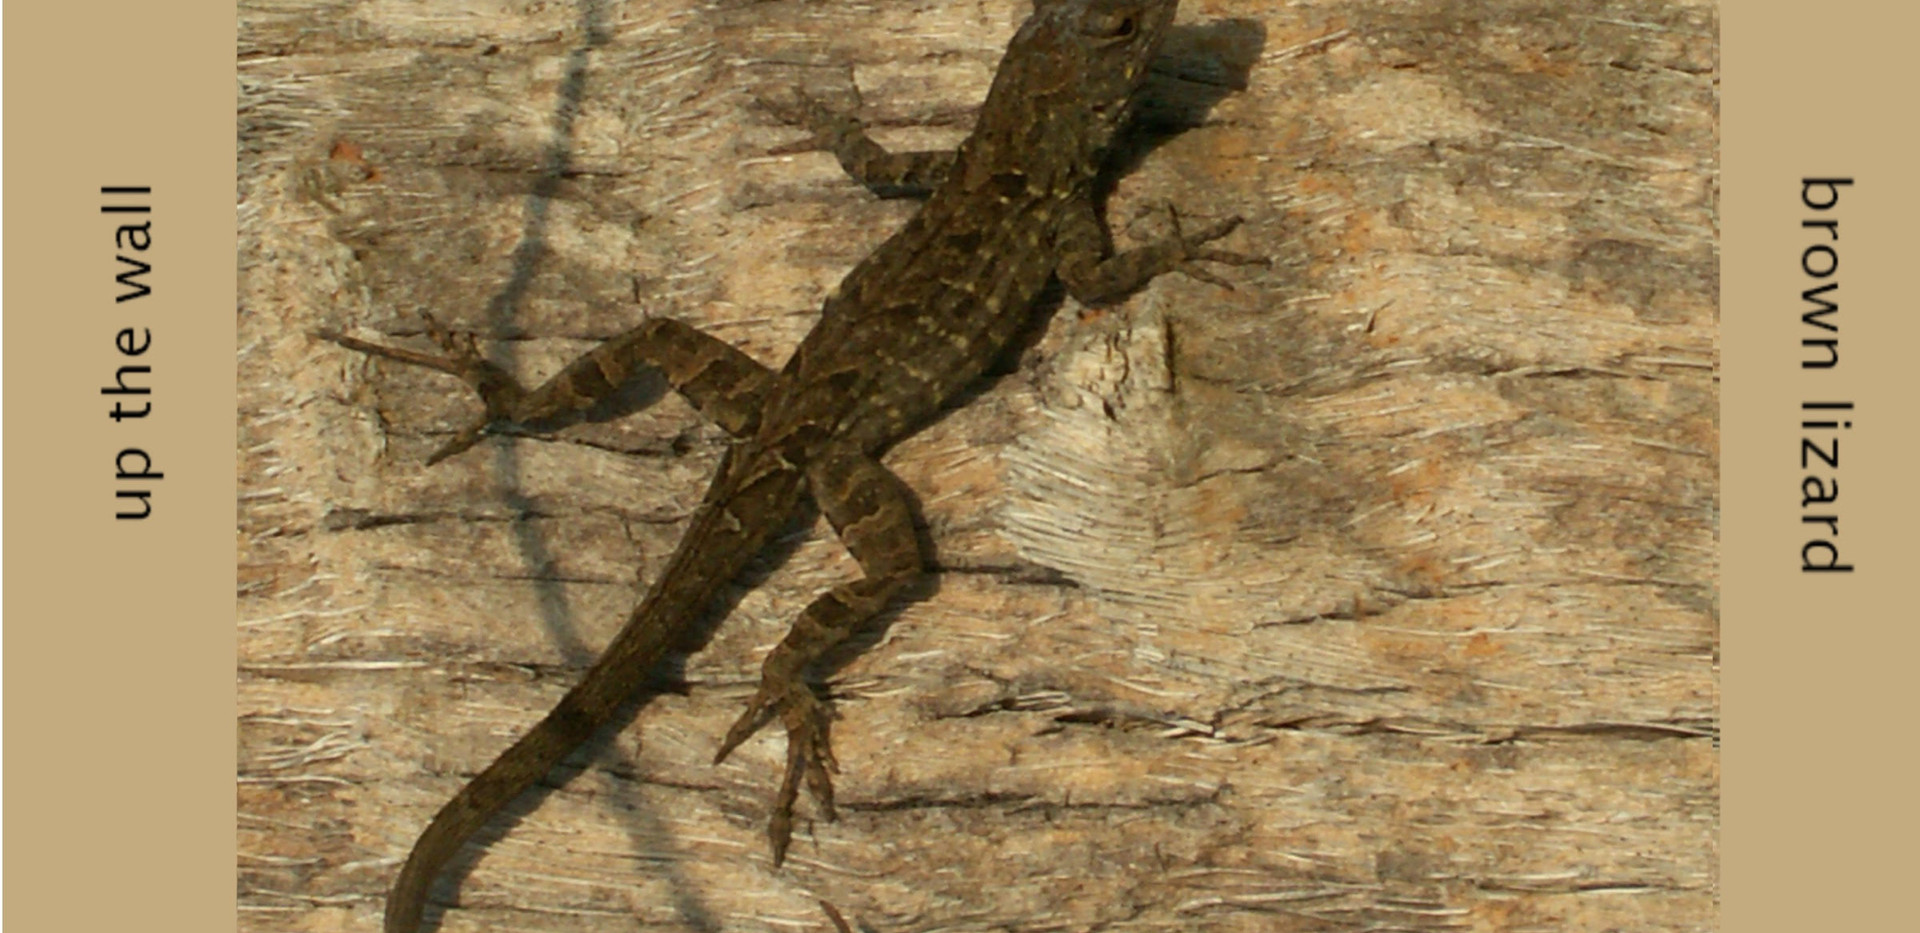 brown lizard.jpg